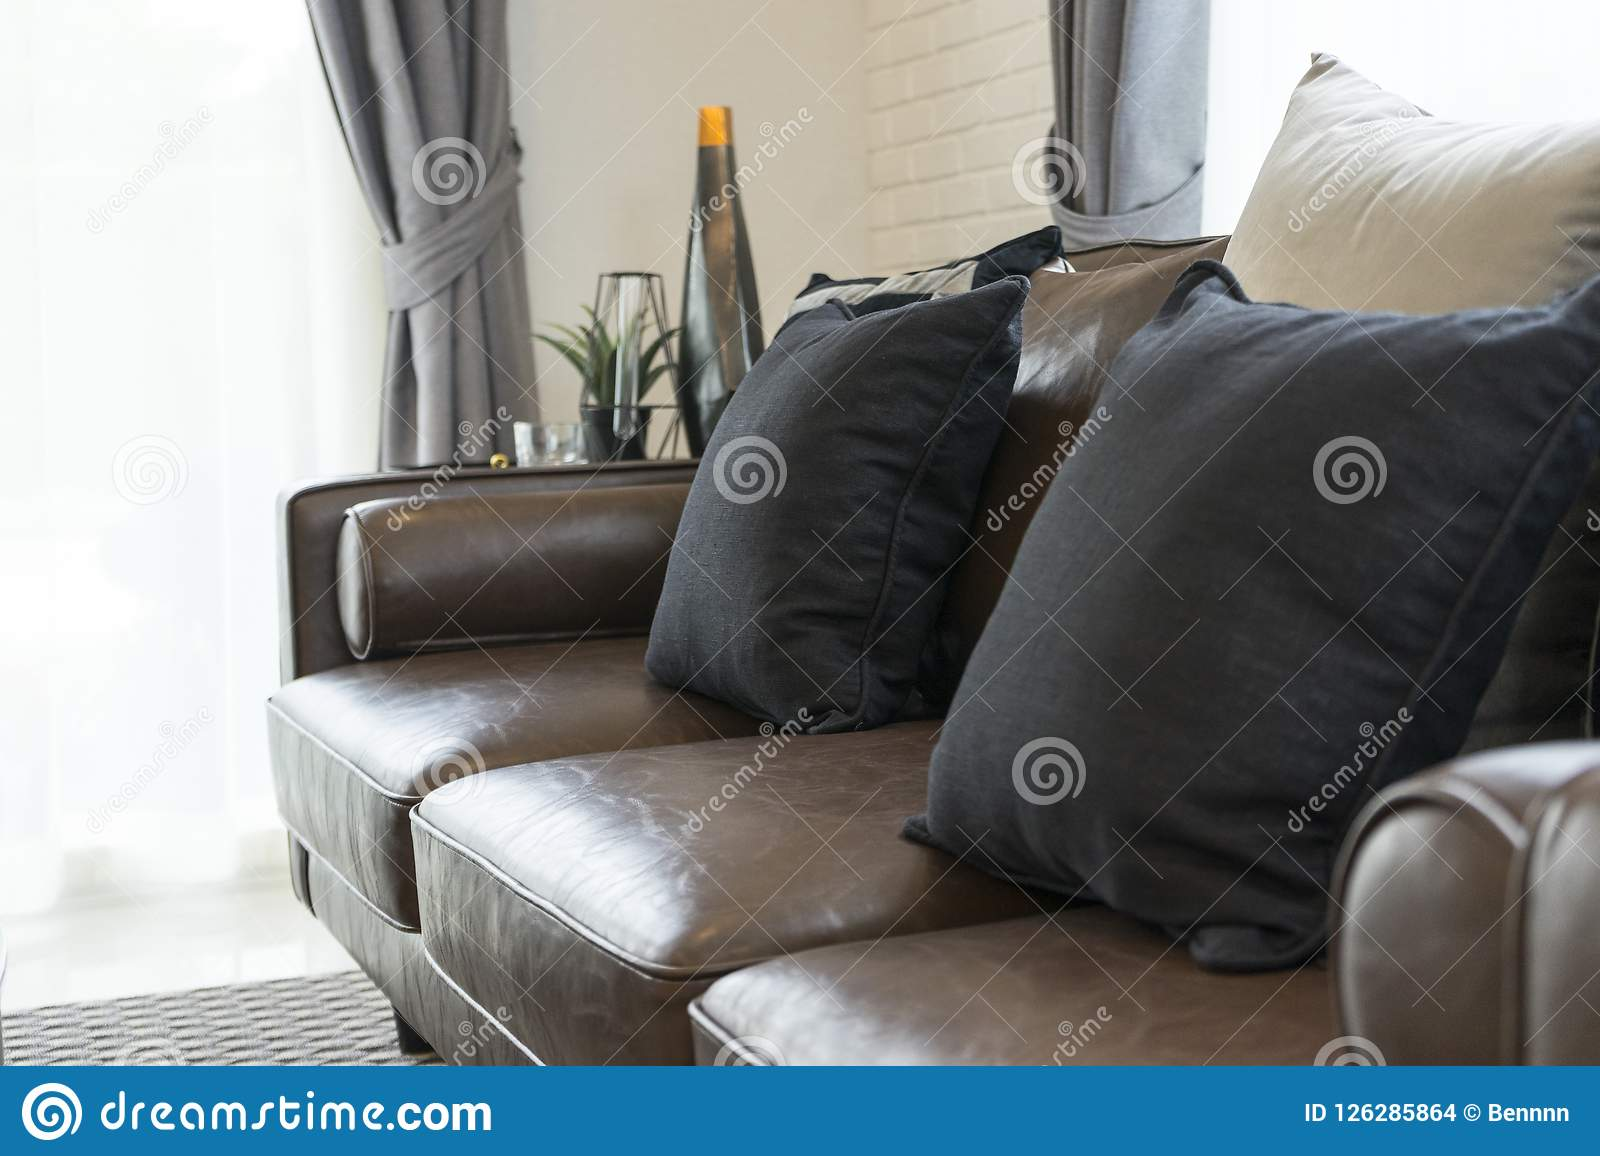 Luxury Black And Grey Pillow On Sofa In Living Room With Side Table Stock Photo Image Of Bedroom Hotel 126285864